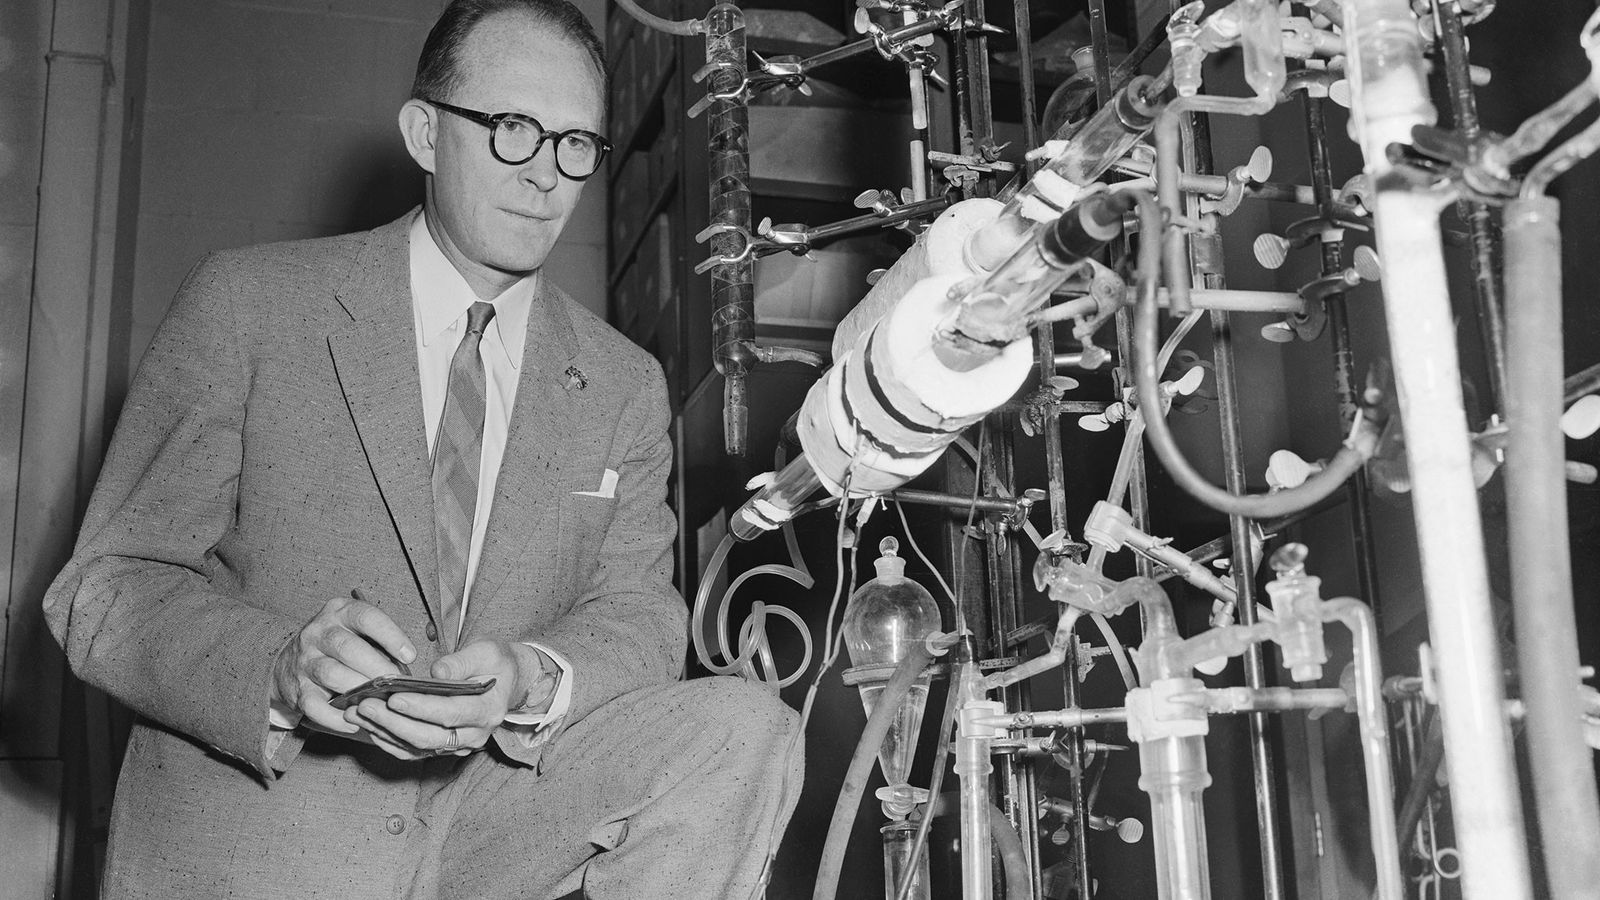 Professor Willard Libby, a chemist at the University of Chicago, first proposed the idea of radiocarbon ...